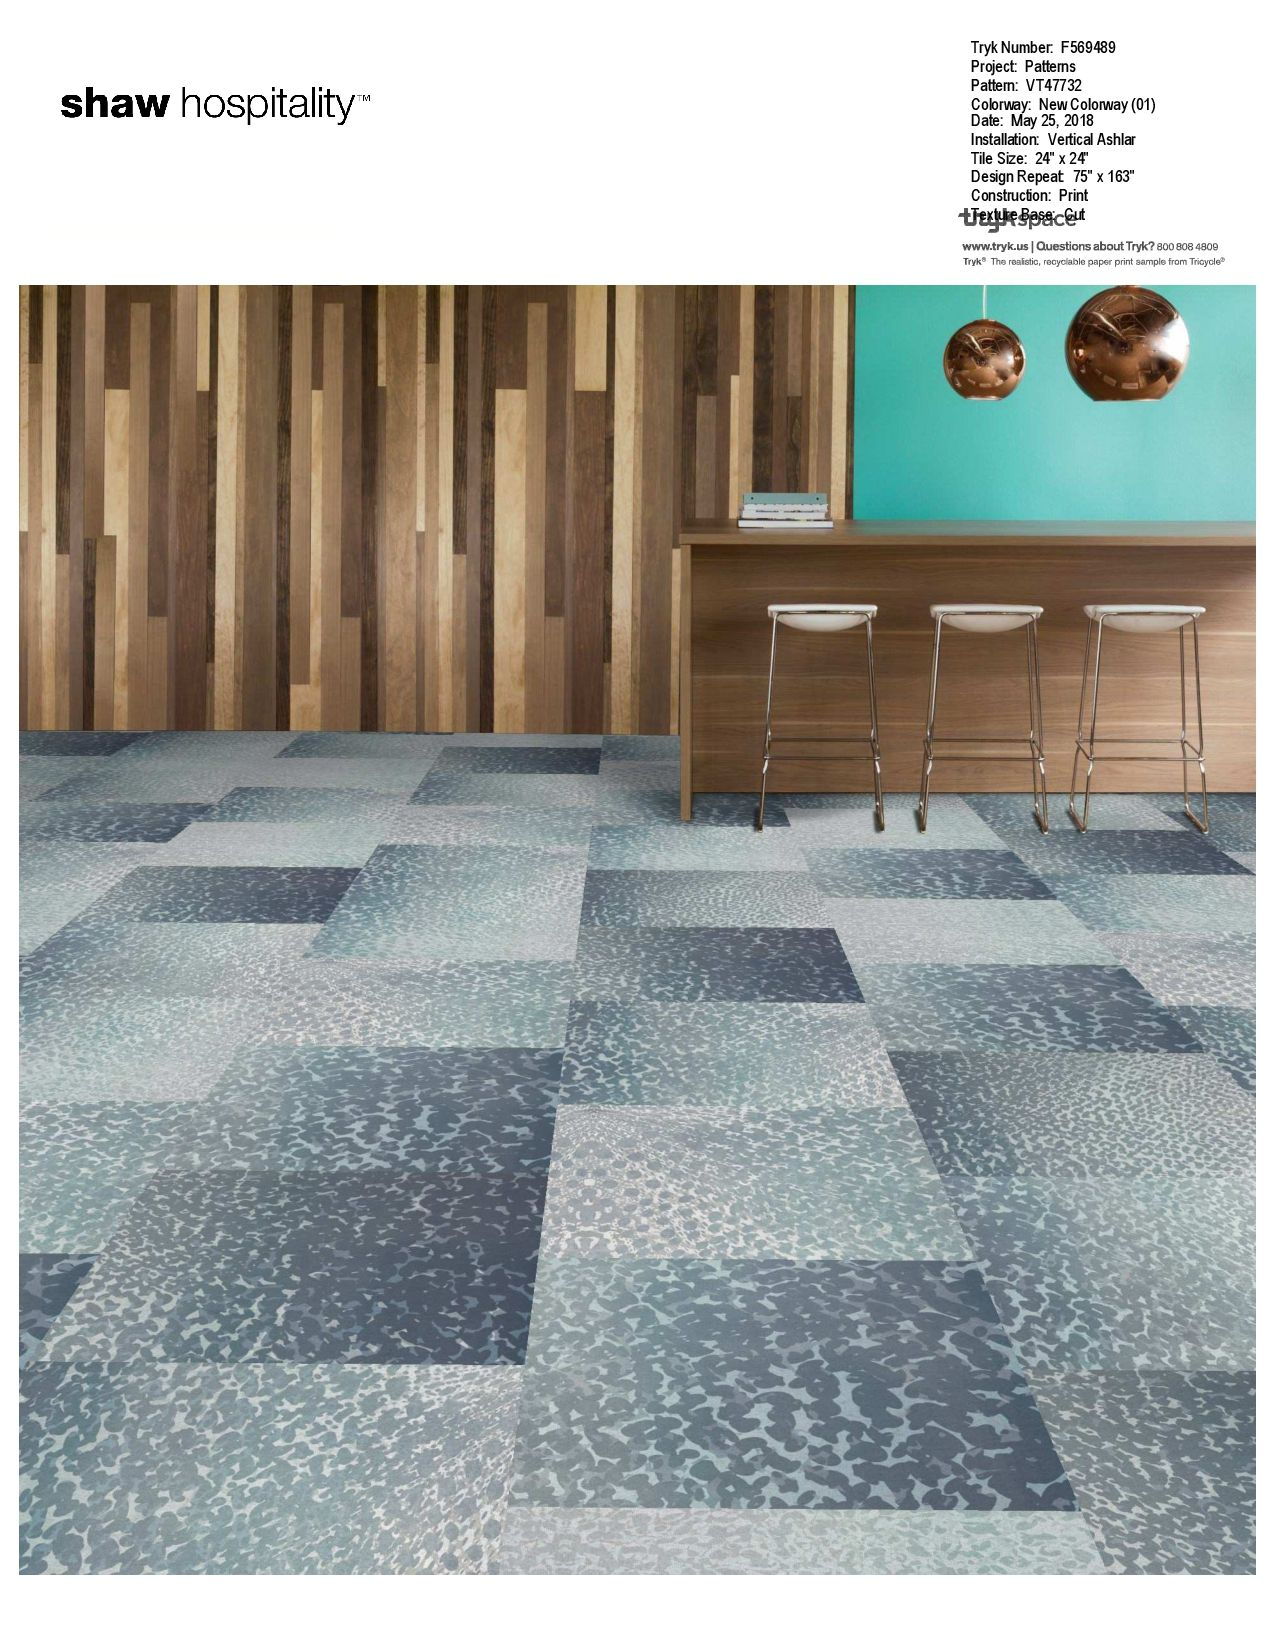 Pin By Andrew Miller On Shaw Hospitality Carpet Tile Shaw